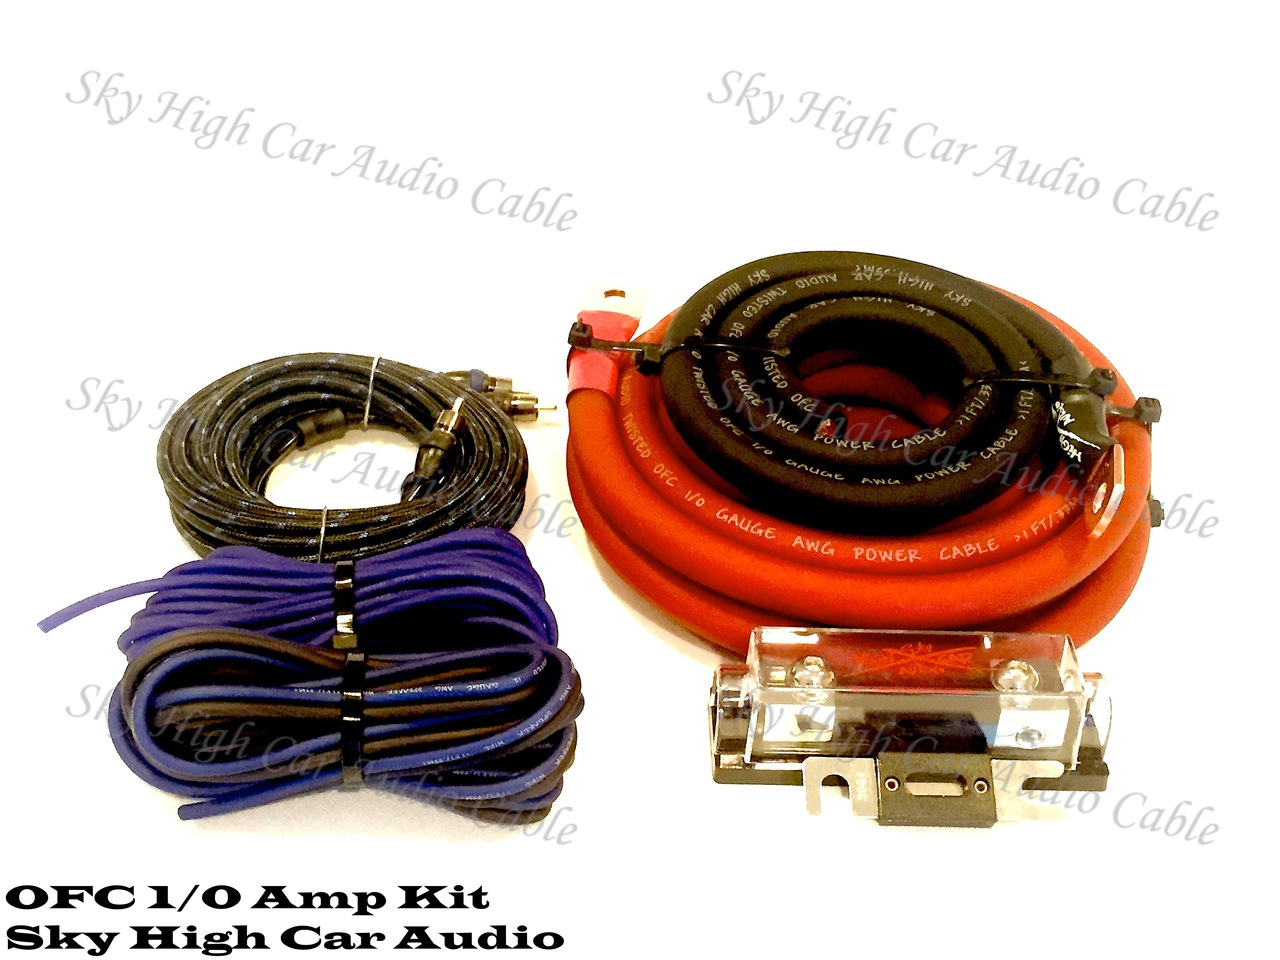 Sky High Car Audio 1 0 Ofc Amp Kit Pro 4 Gauge Amplifier Install Wiring Complete Cables